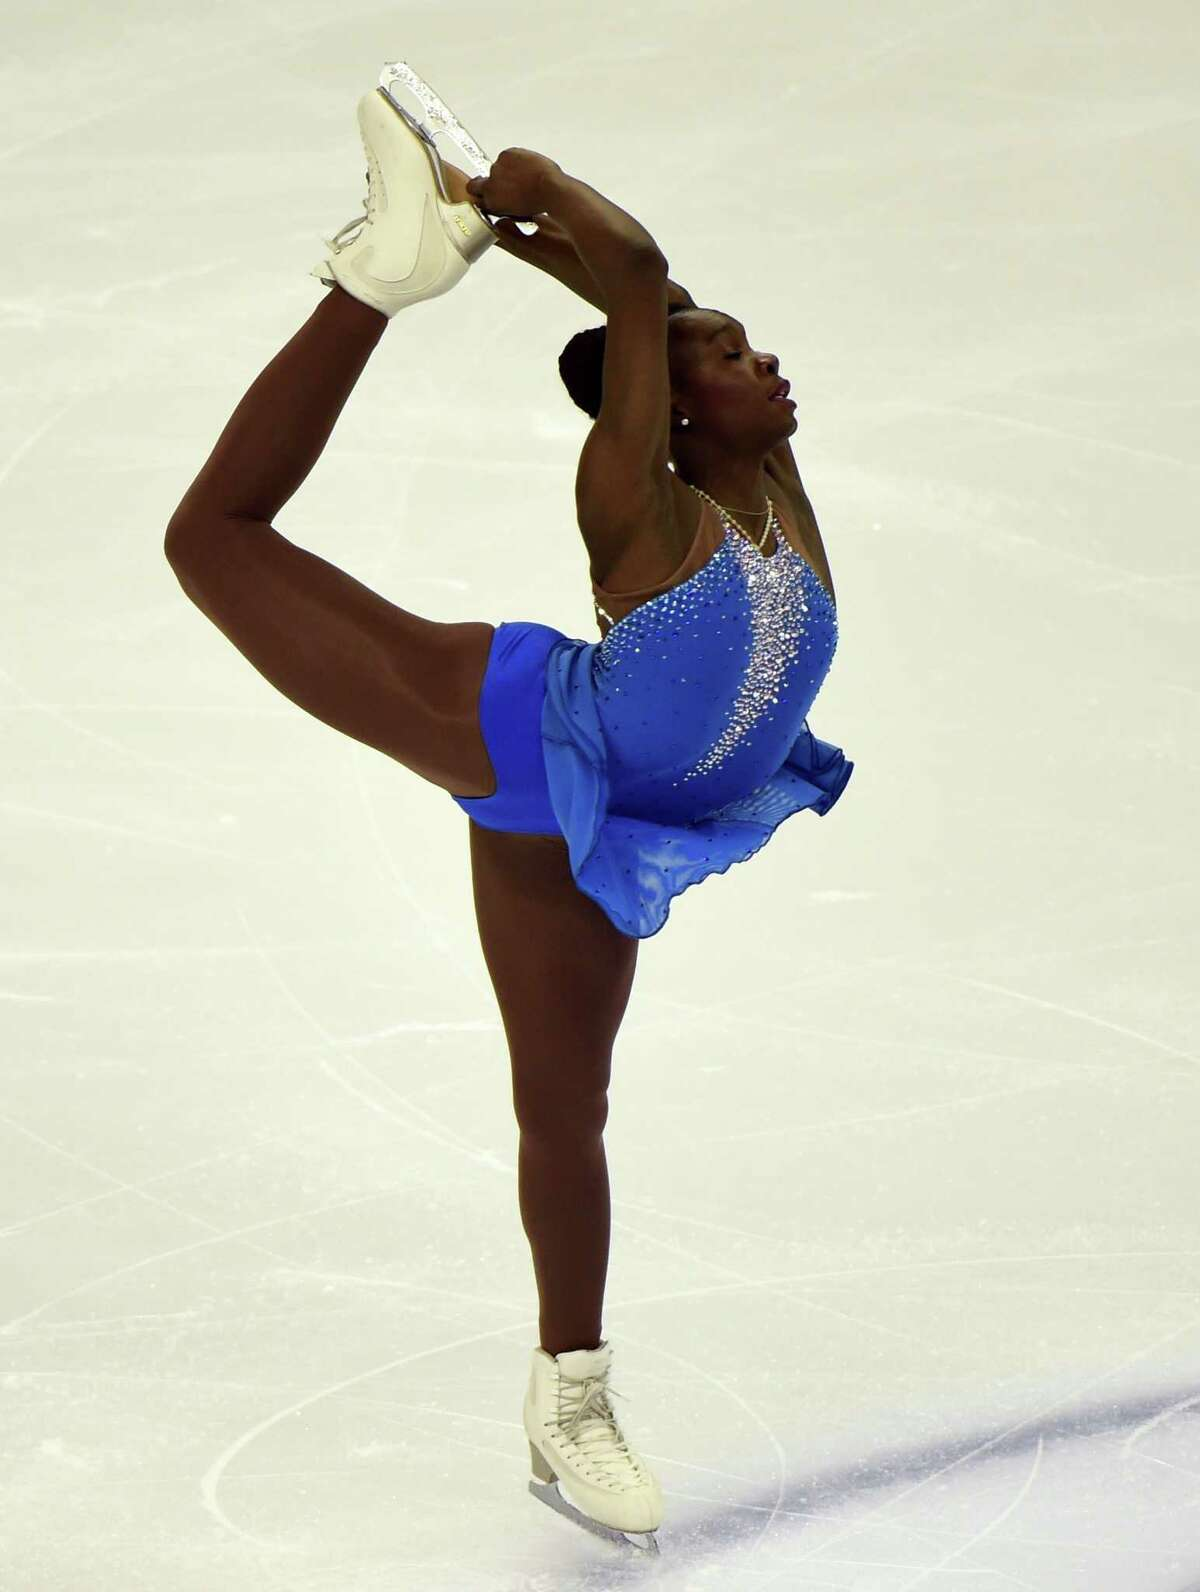 Mae Berenice Meite of France competes in the ladies' free skating of the 2015 ISU World Figure Skating Championships at the Shanghai Oriental Sports Center in Shanghai on March 28, 2015. AFP PHOTO / GOH CHAI HINGOH CHAI HIN/AFP/Getty Images